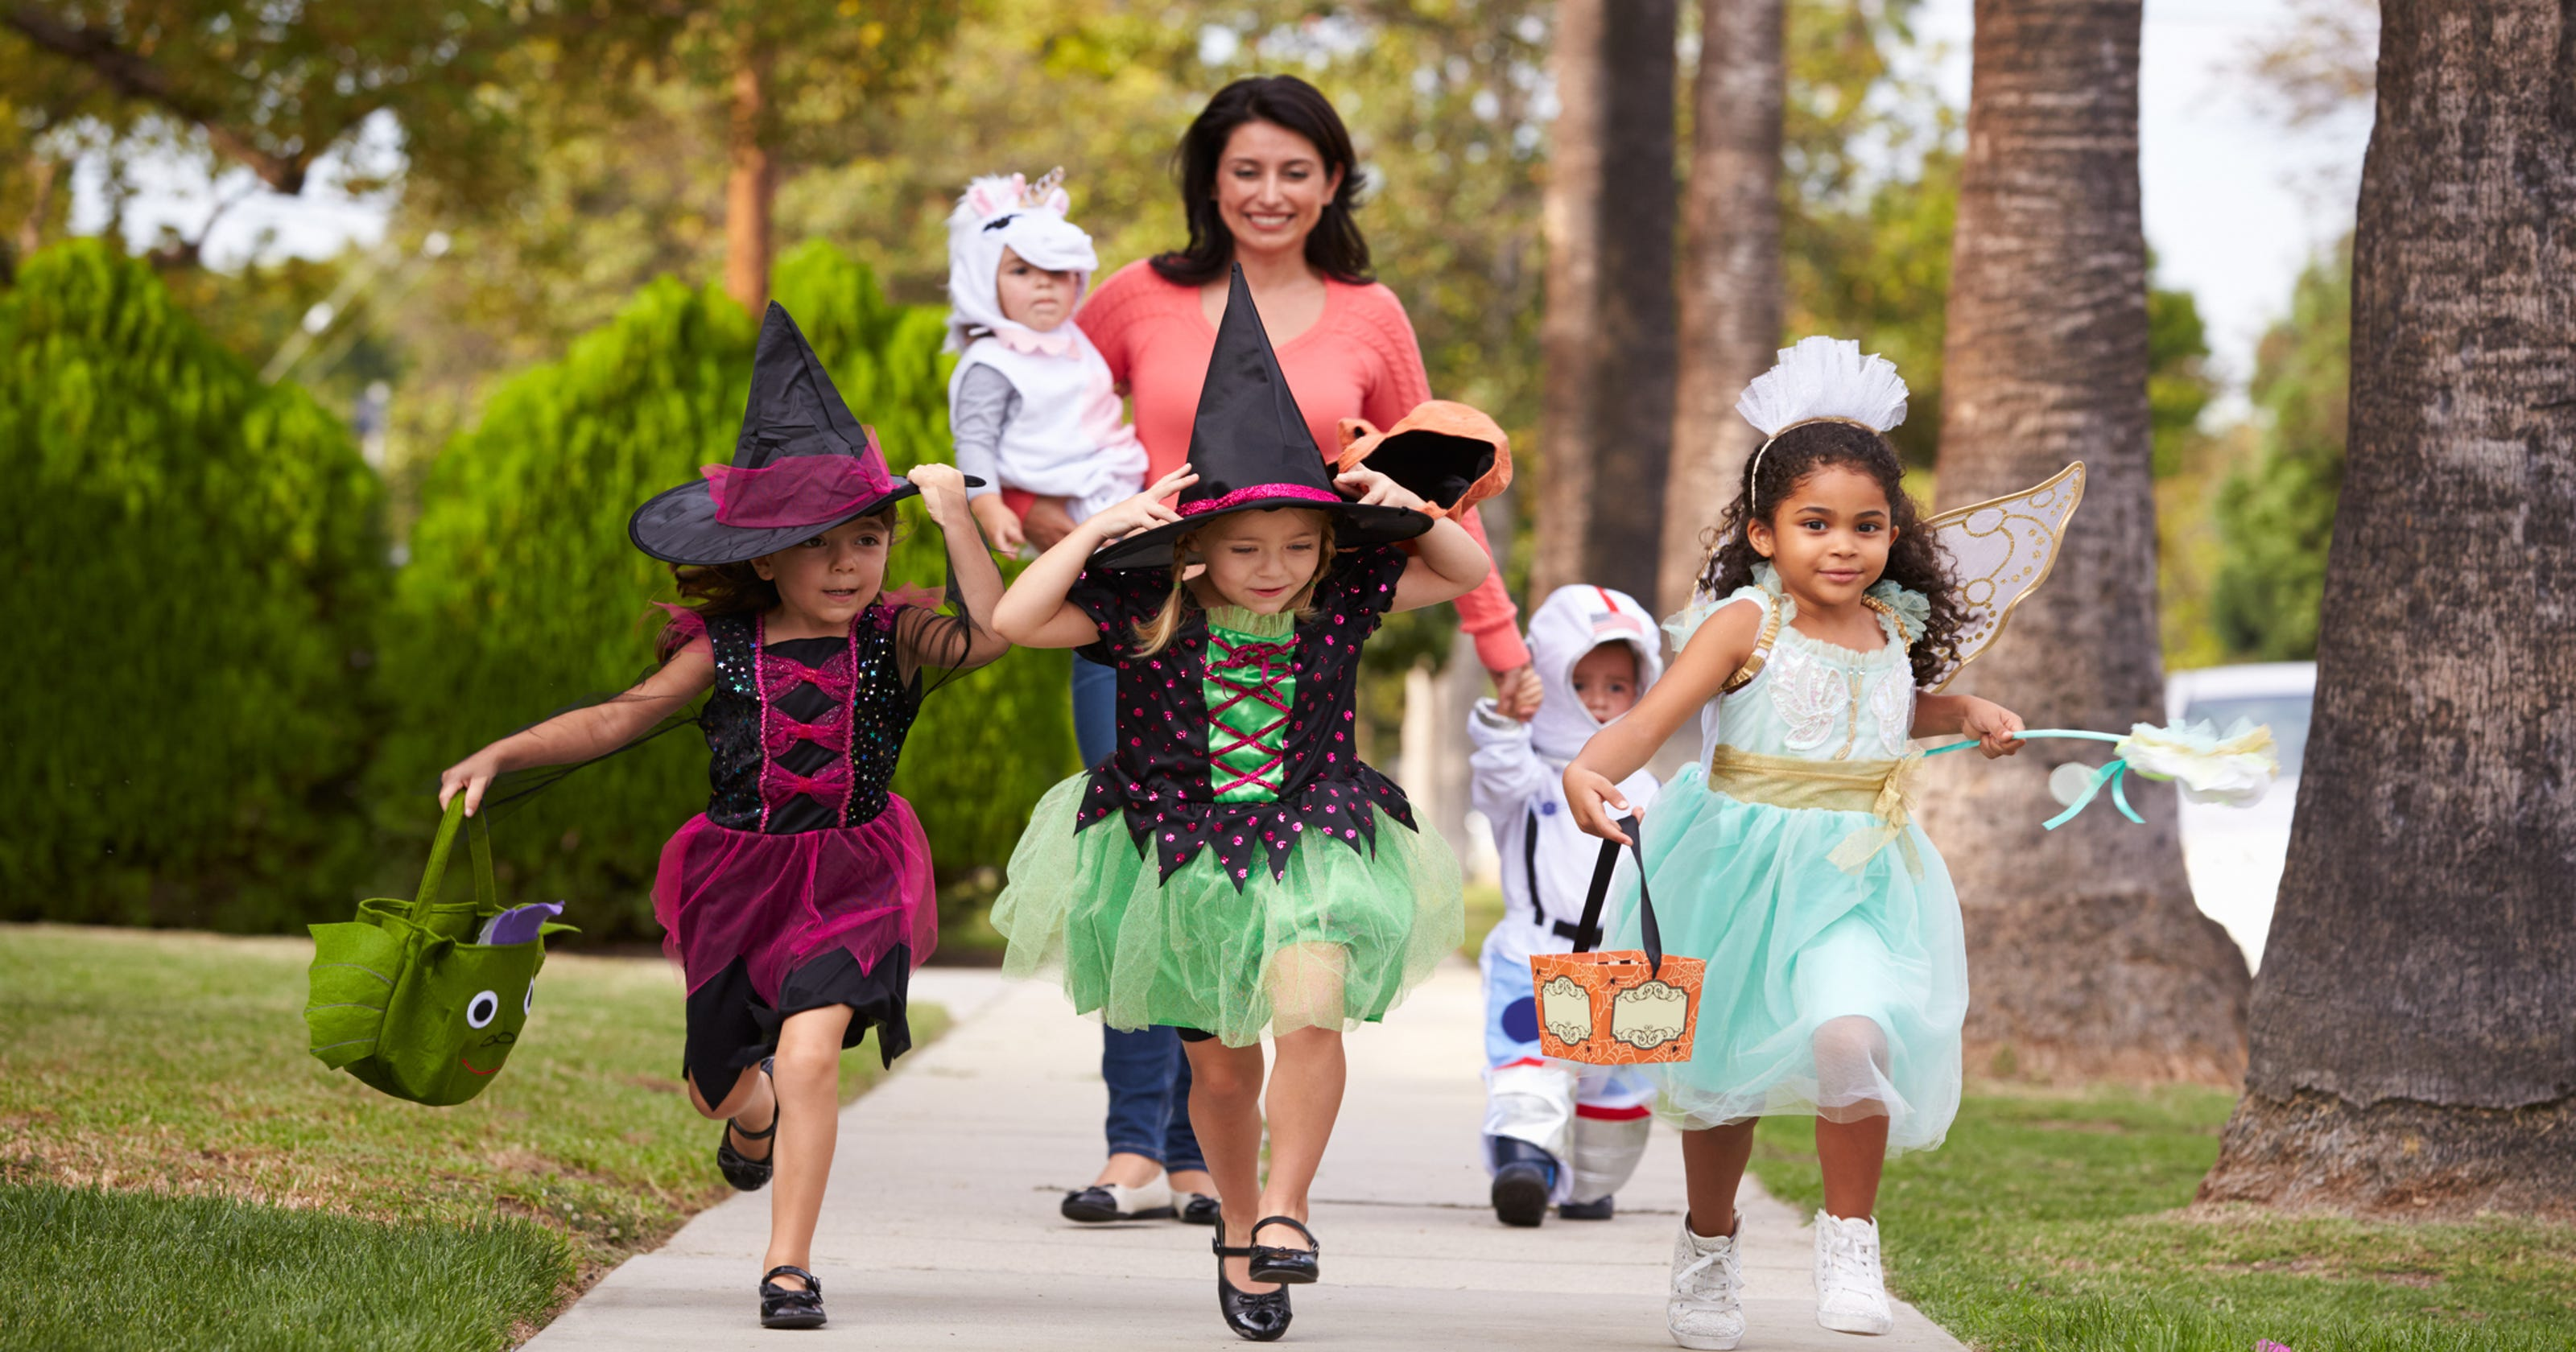 Last minute halloween costumes 10 easy diy ideas under 10 for 2017 solutioingenieria Images